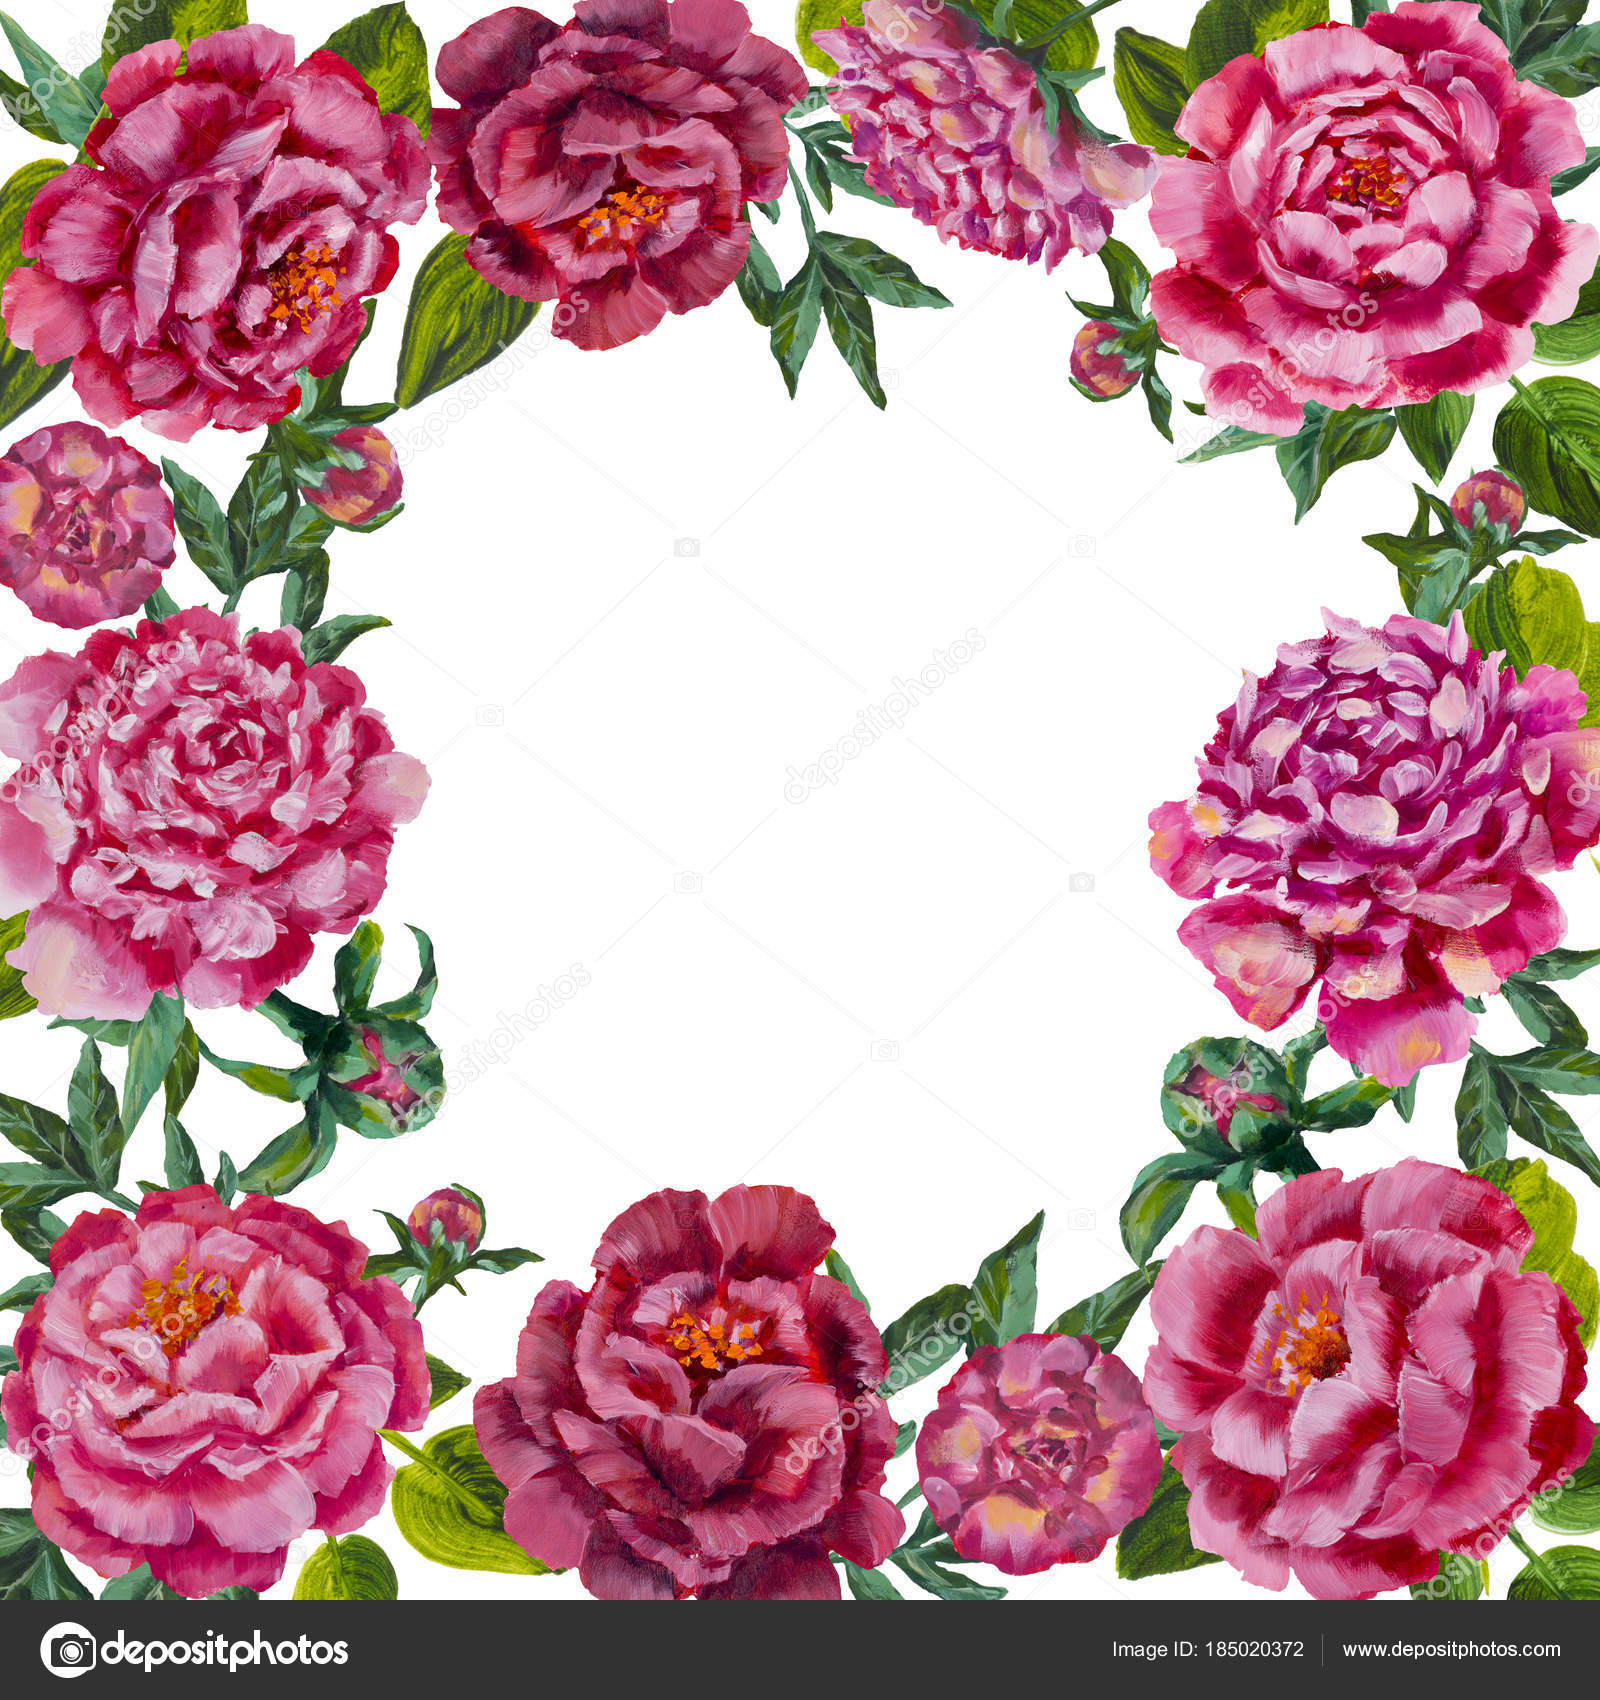 Oil painting pink flower peonies roses frame background flower oil painting pink flower peonies roses frame background flower wreath stock photo mightylinksfo